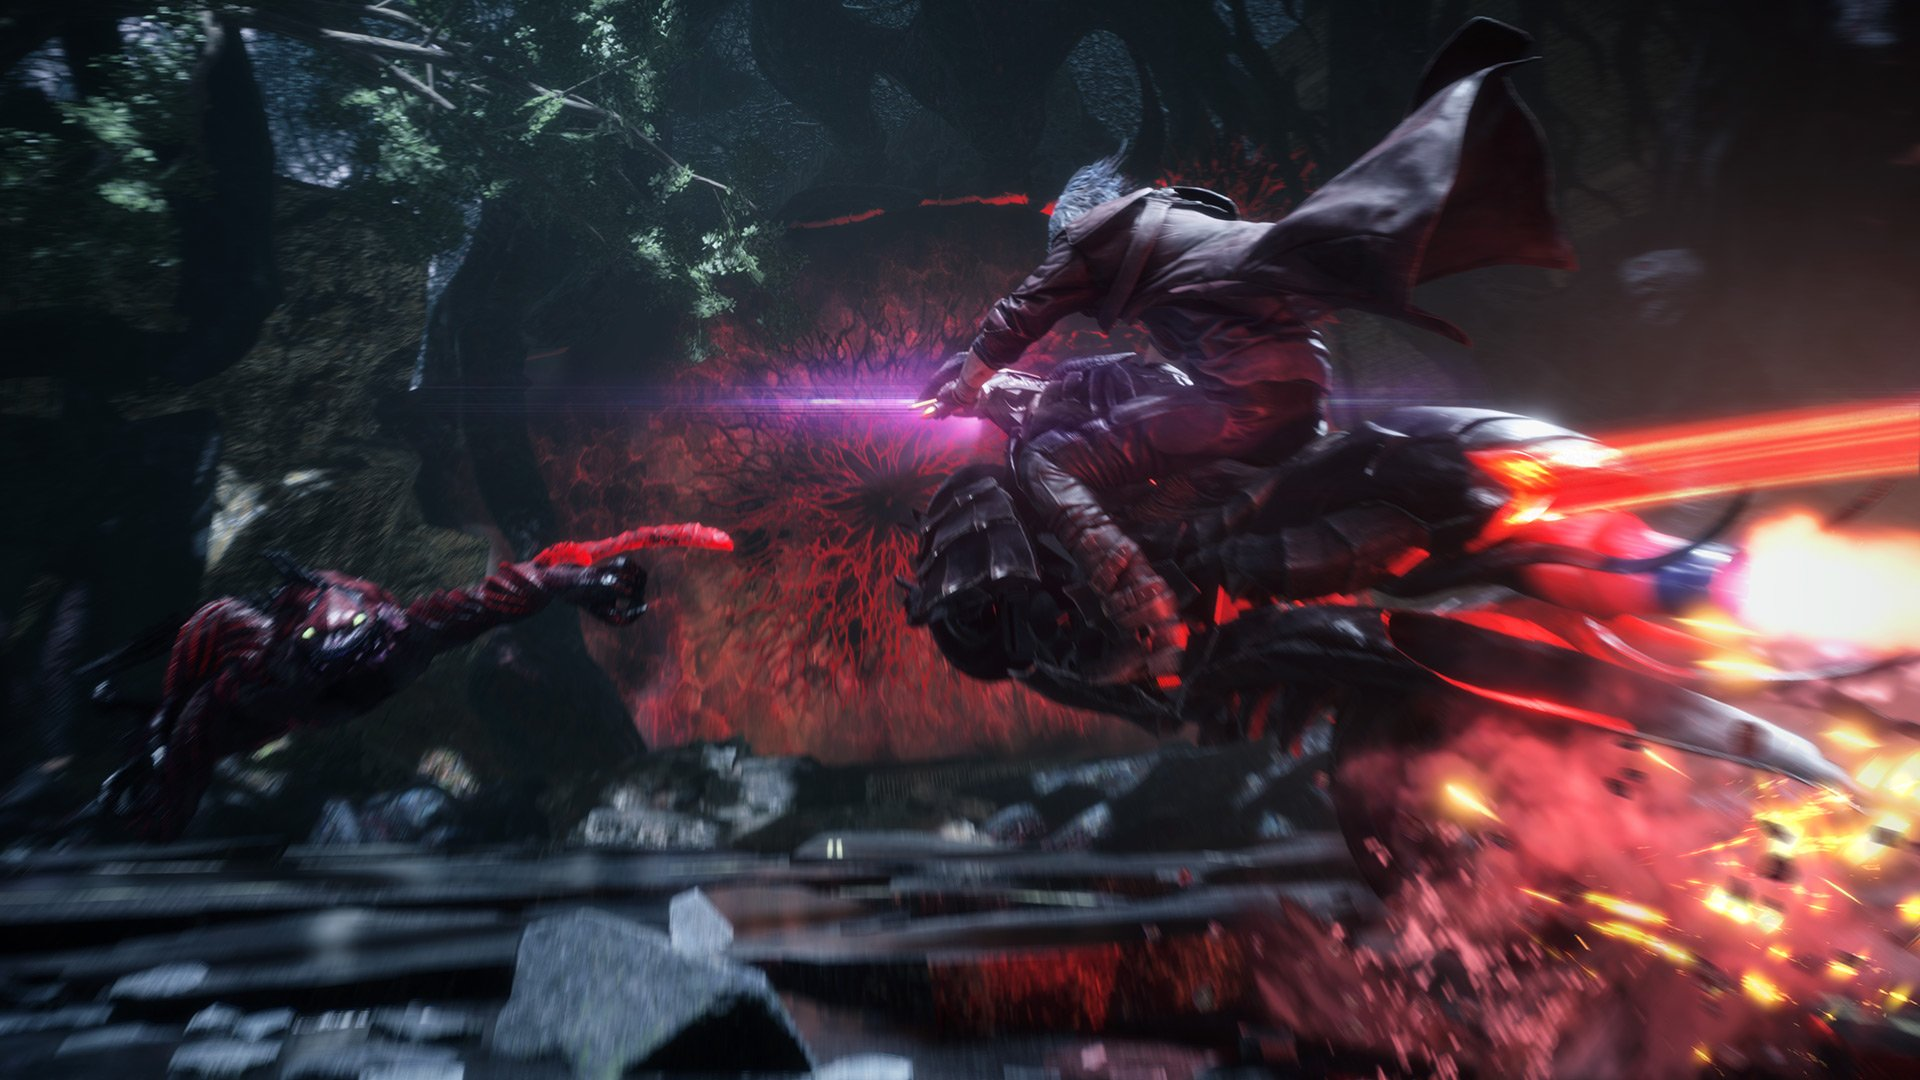 New Devil May Cry 5 demo slated for PS4 and Xbox One screenshot